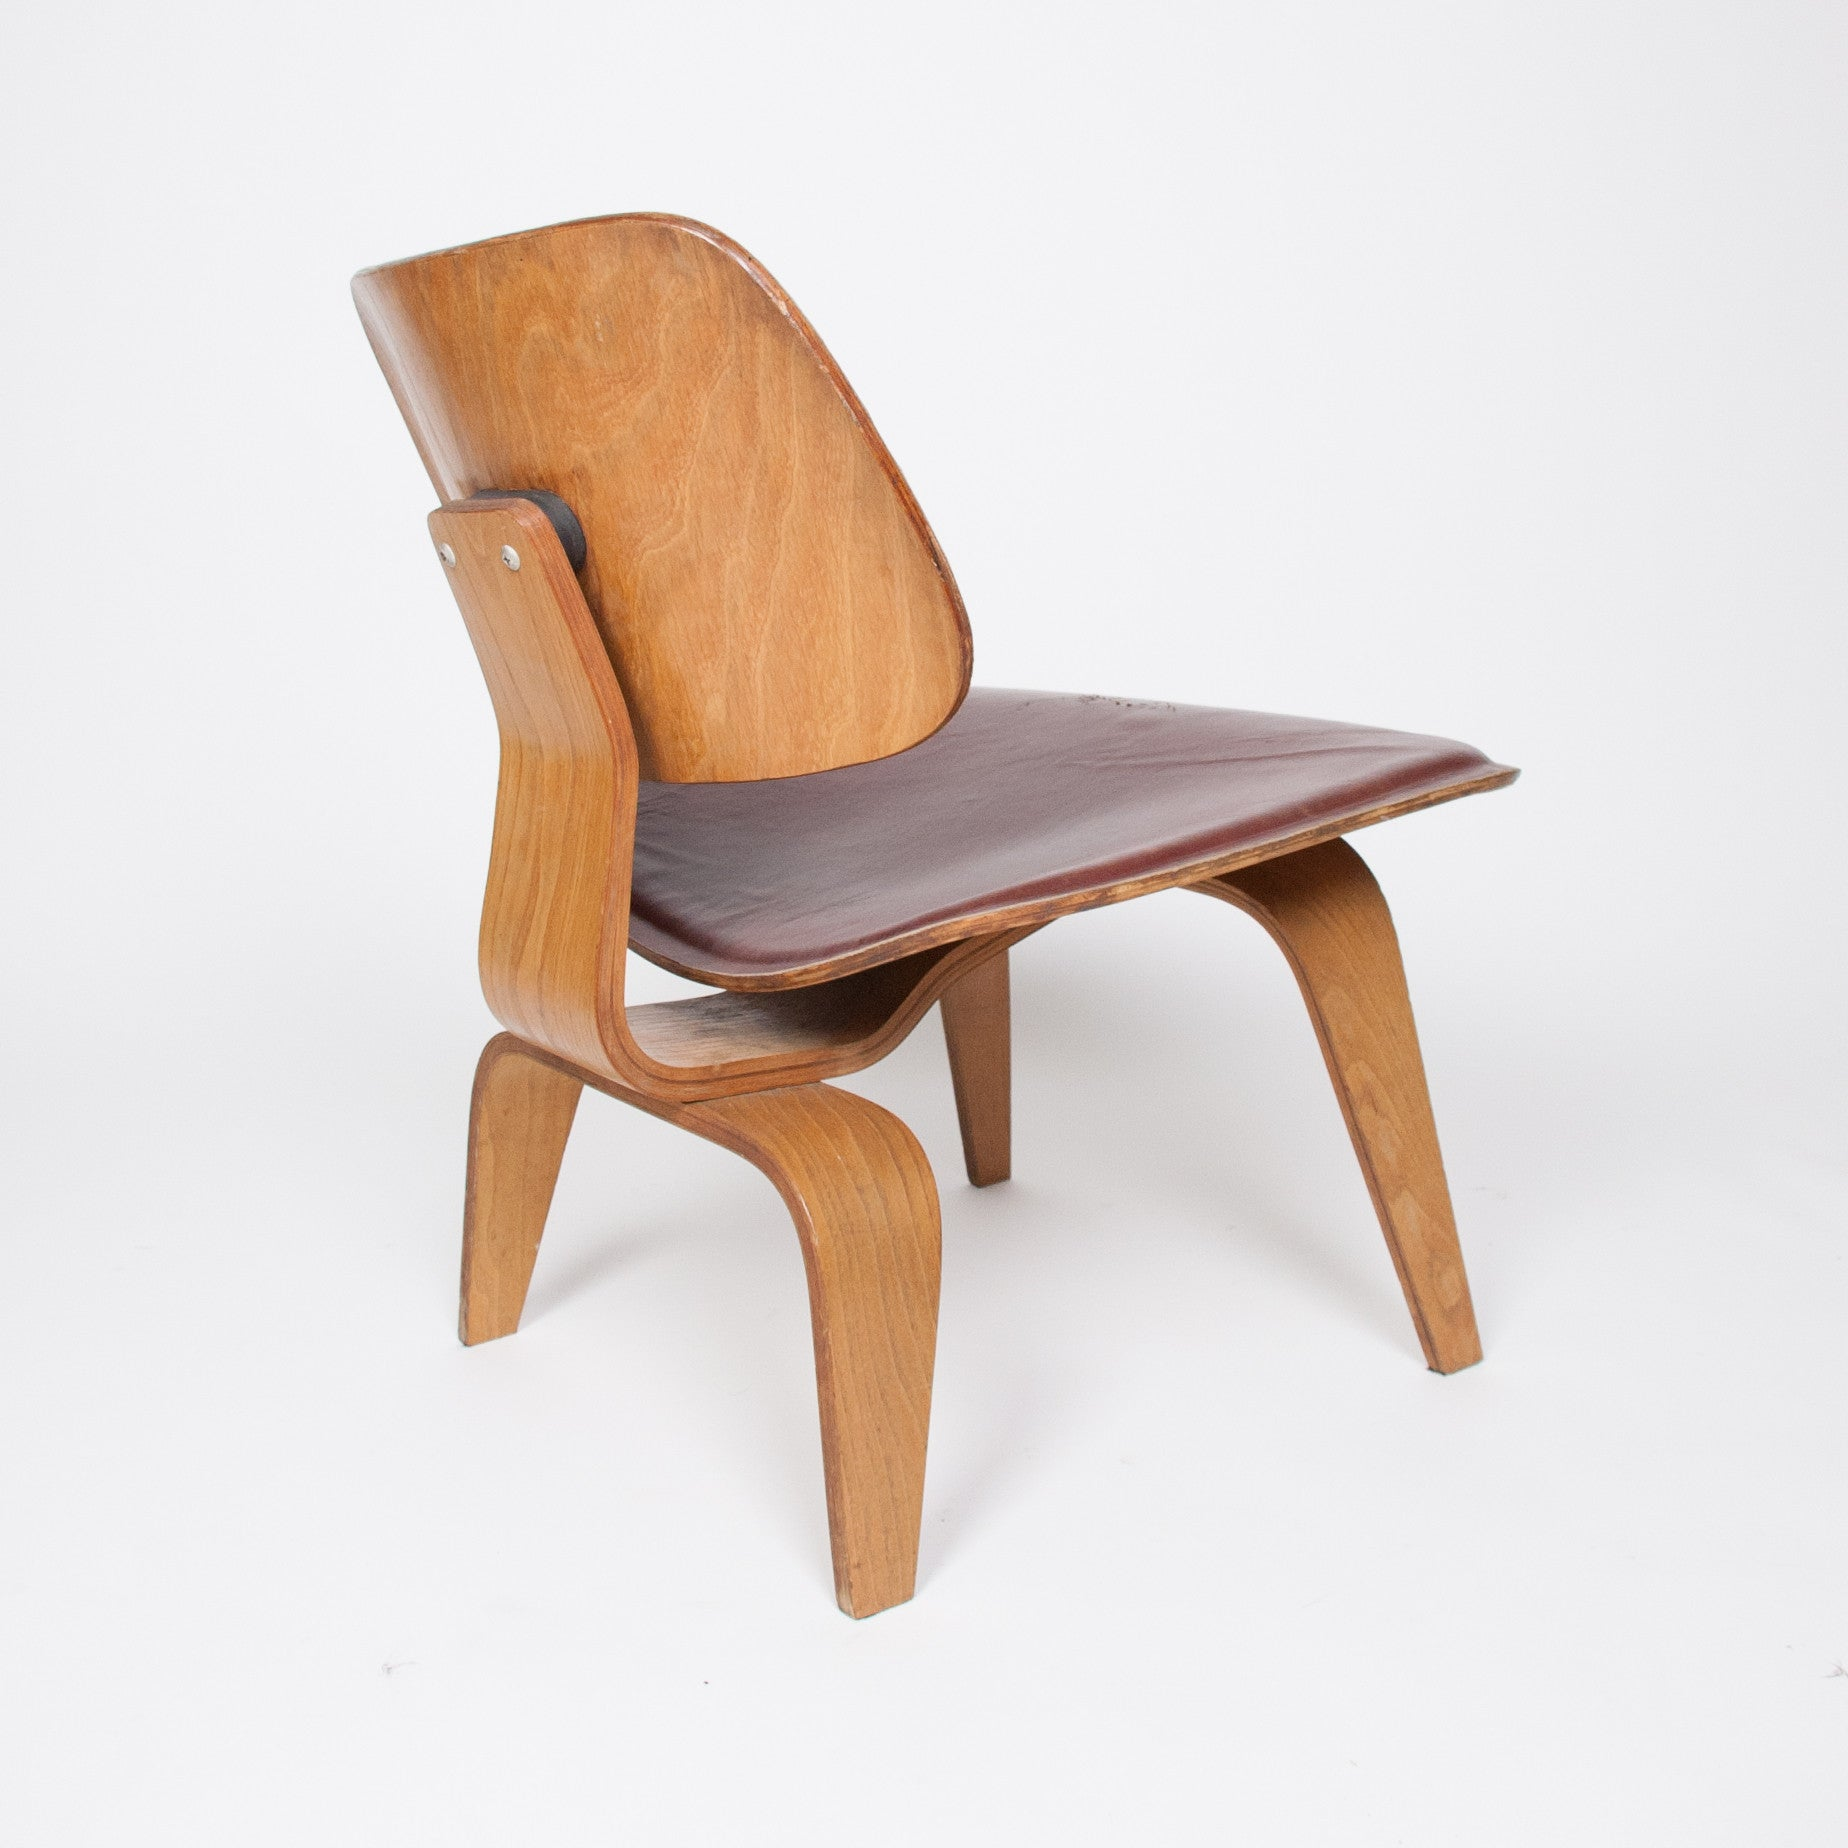 Herman miller plywood lounge chair - Sold Eames Evans Herman Miller 1947 Lcw Plywood Lounge Chair Leather 5 2